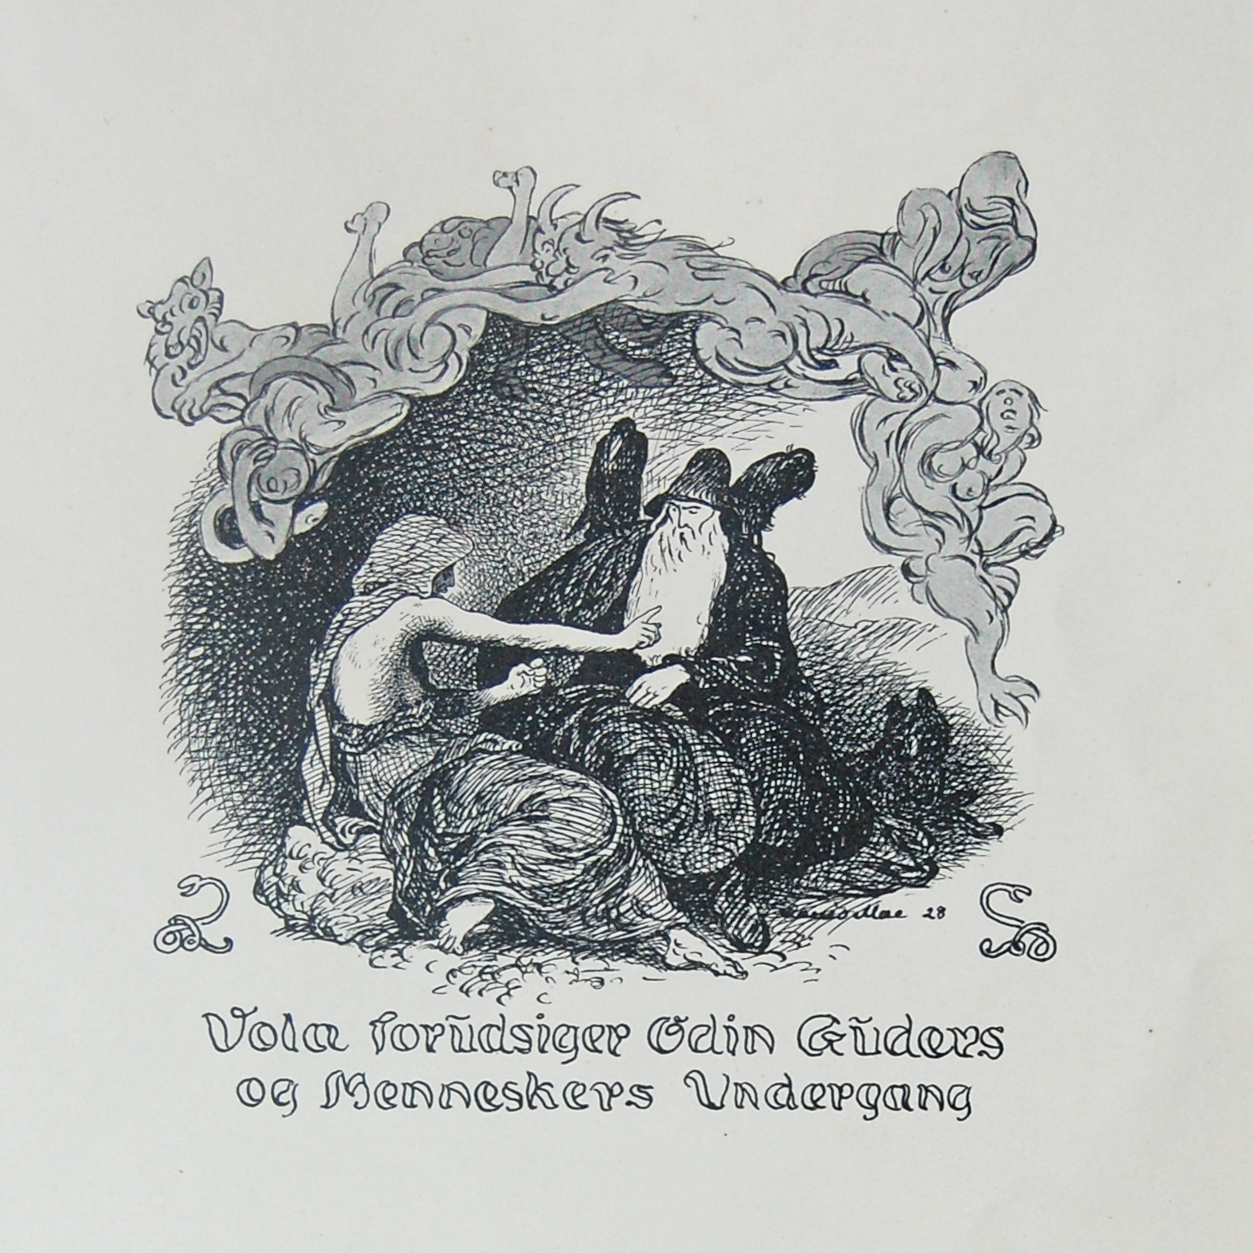 Óðinn and the Völuspá Seeress